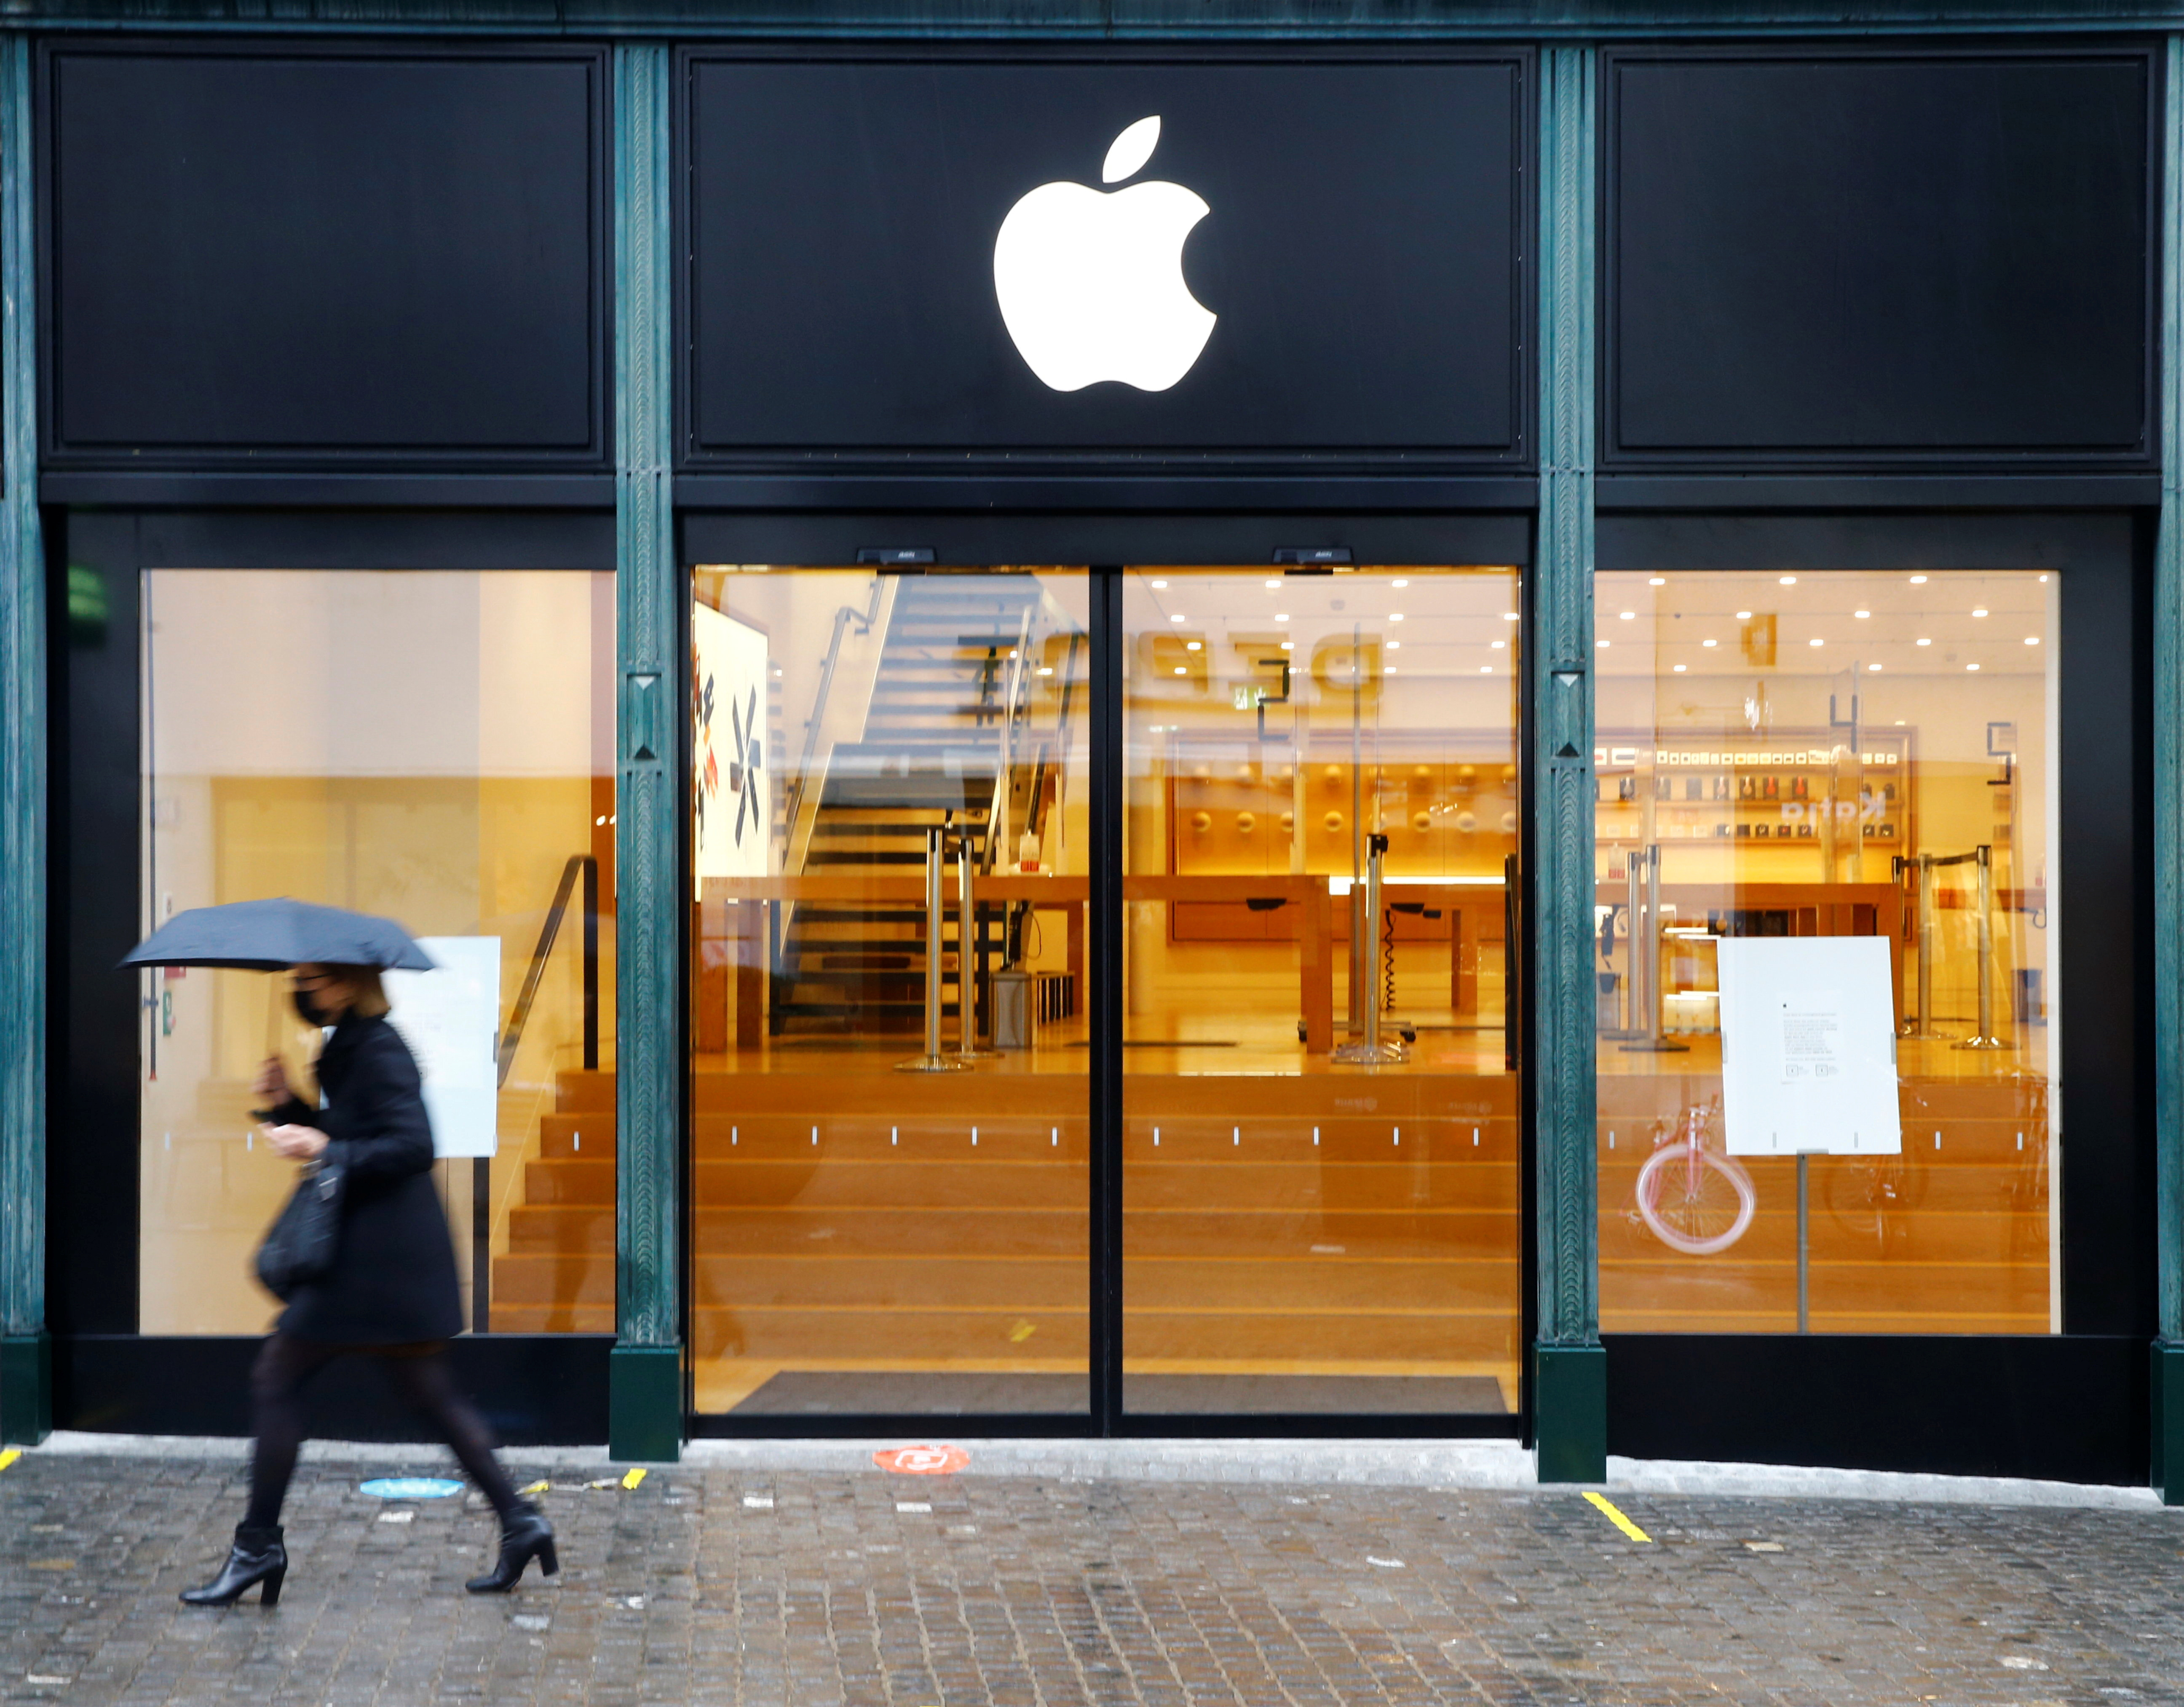 A person walks past an Apple store, which is closed during a partial lockdown, as the spread of the coronavirus disease (COVID-19) continues, in Zurich, Switzerland January 28, 2021. REUTERS/Arnd Wiegmann